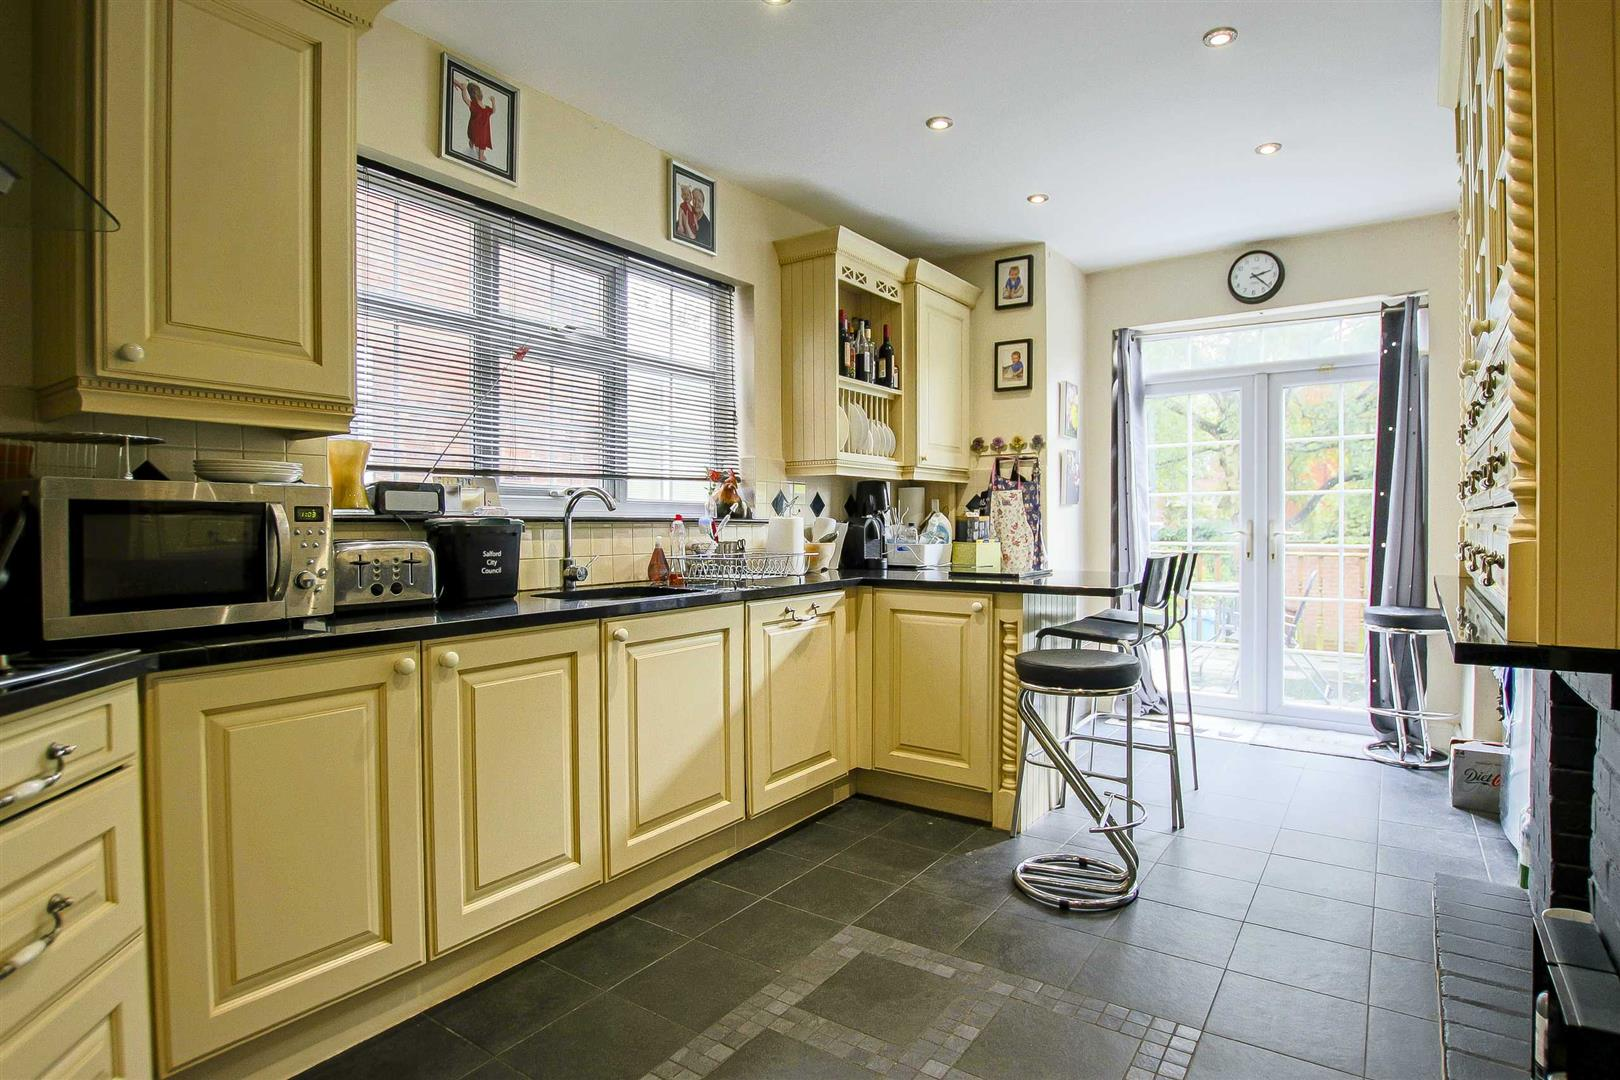 5 Bedroom Terraced House For Sale - Image 2